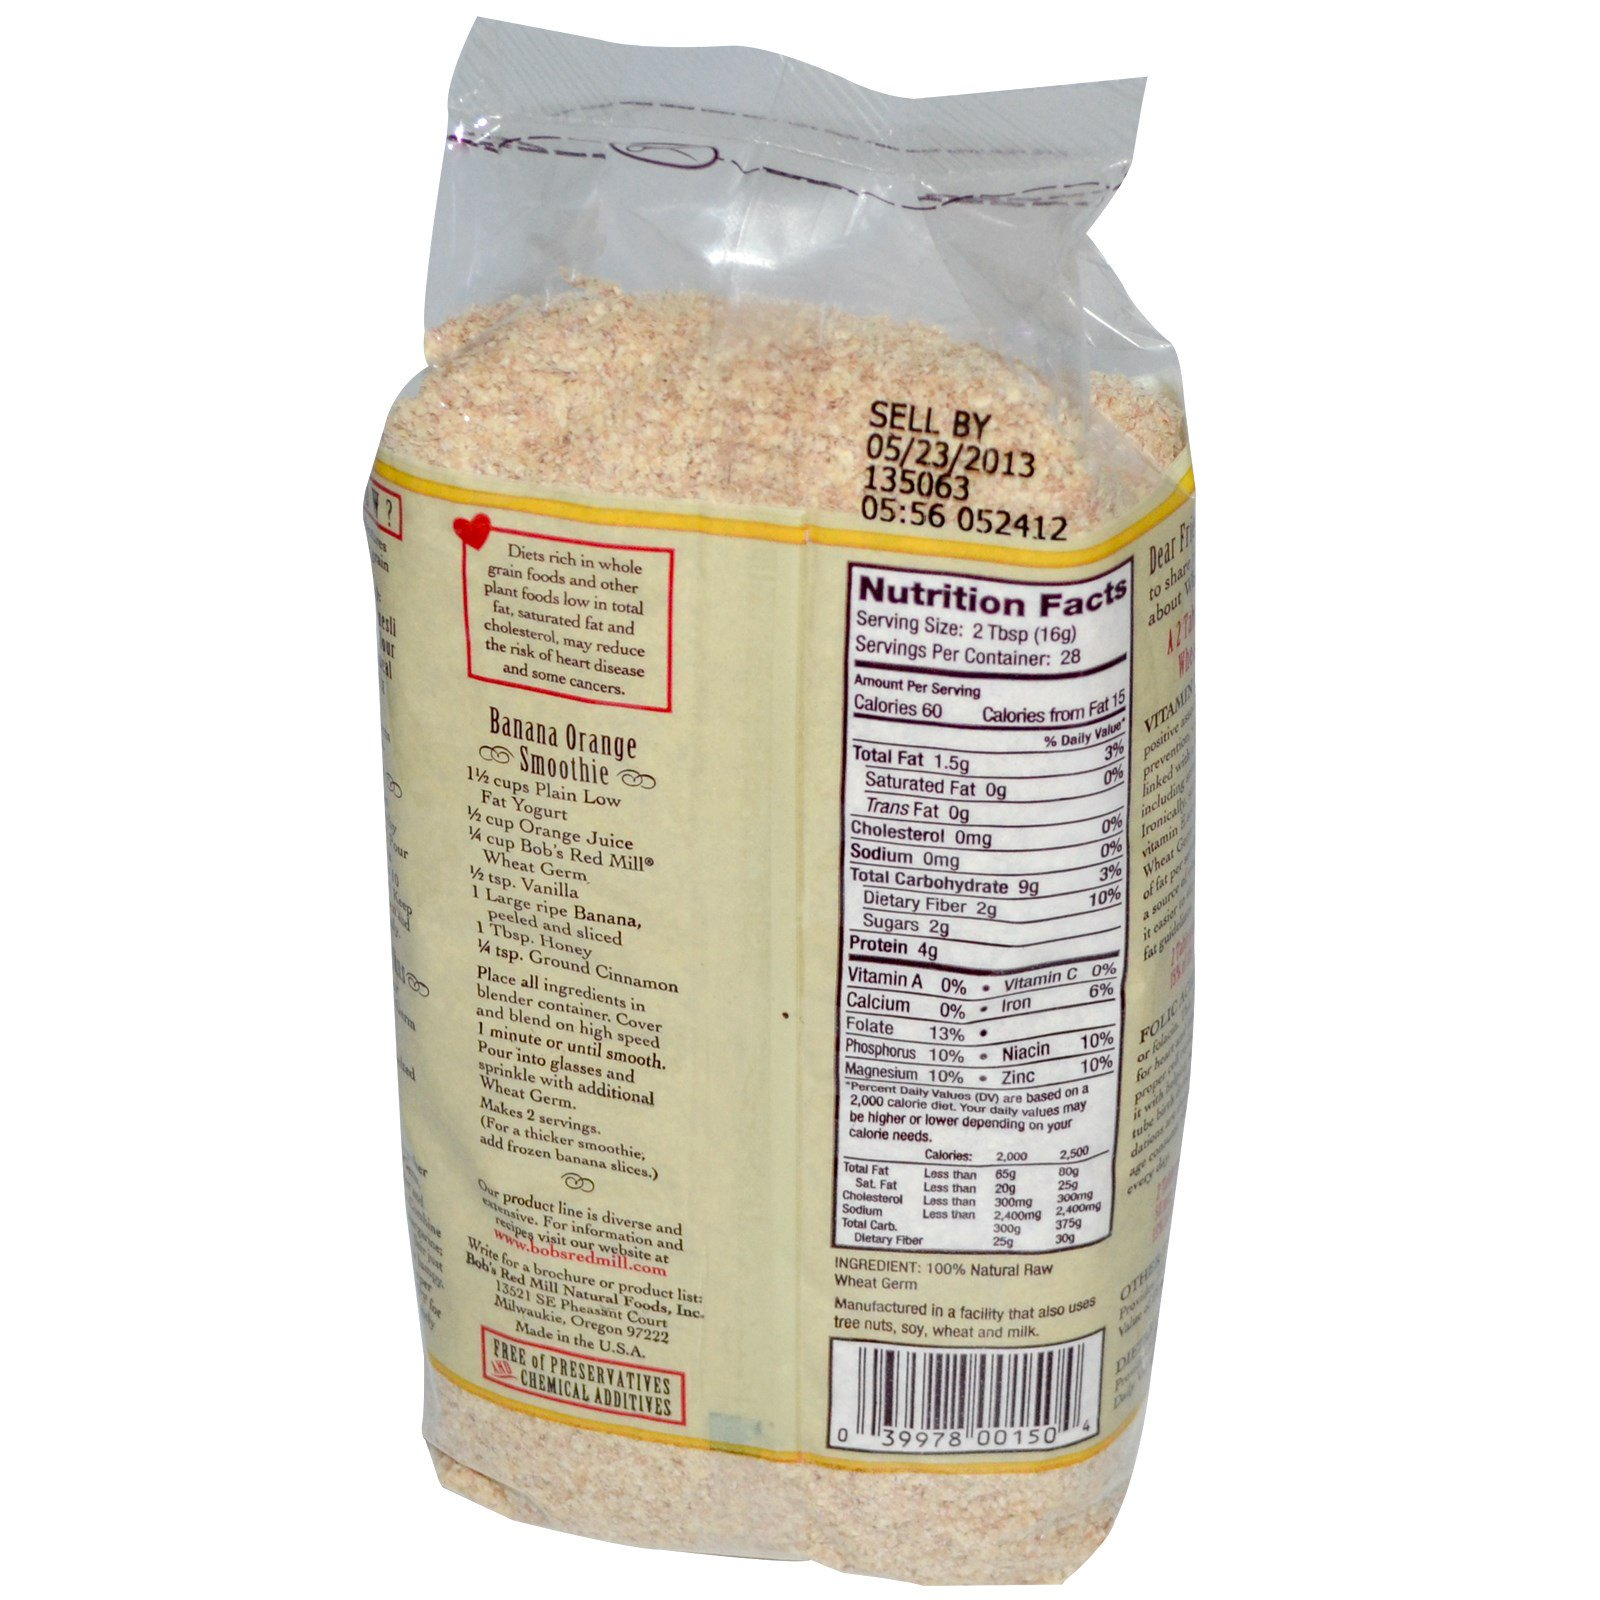 Bob's Red Mill, Natural Raw Wheat Germ, 16 oz (453 g) (Discontinued Item)